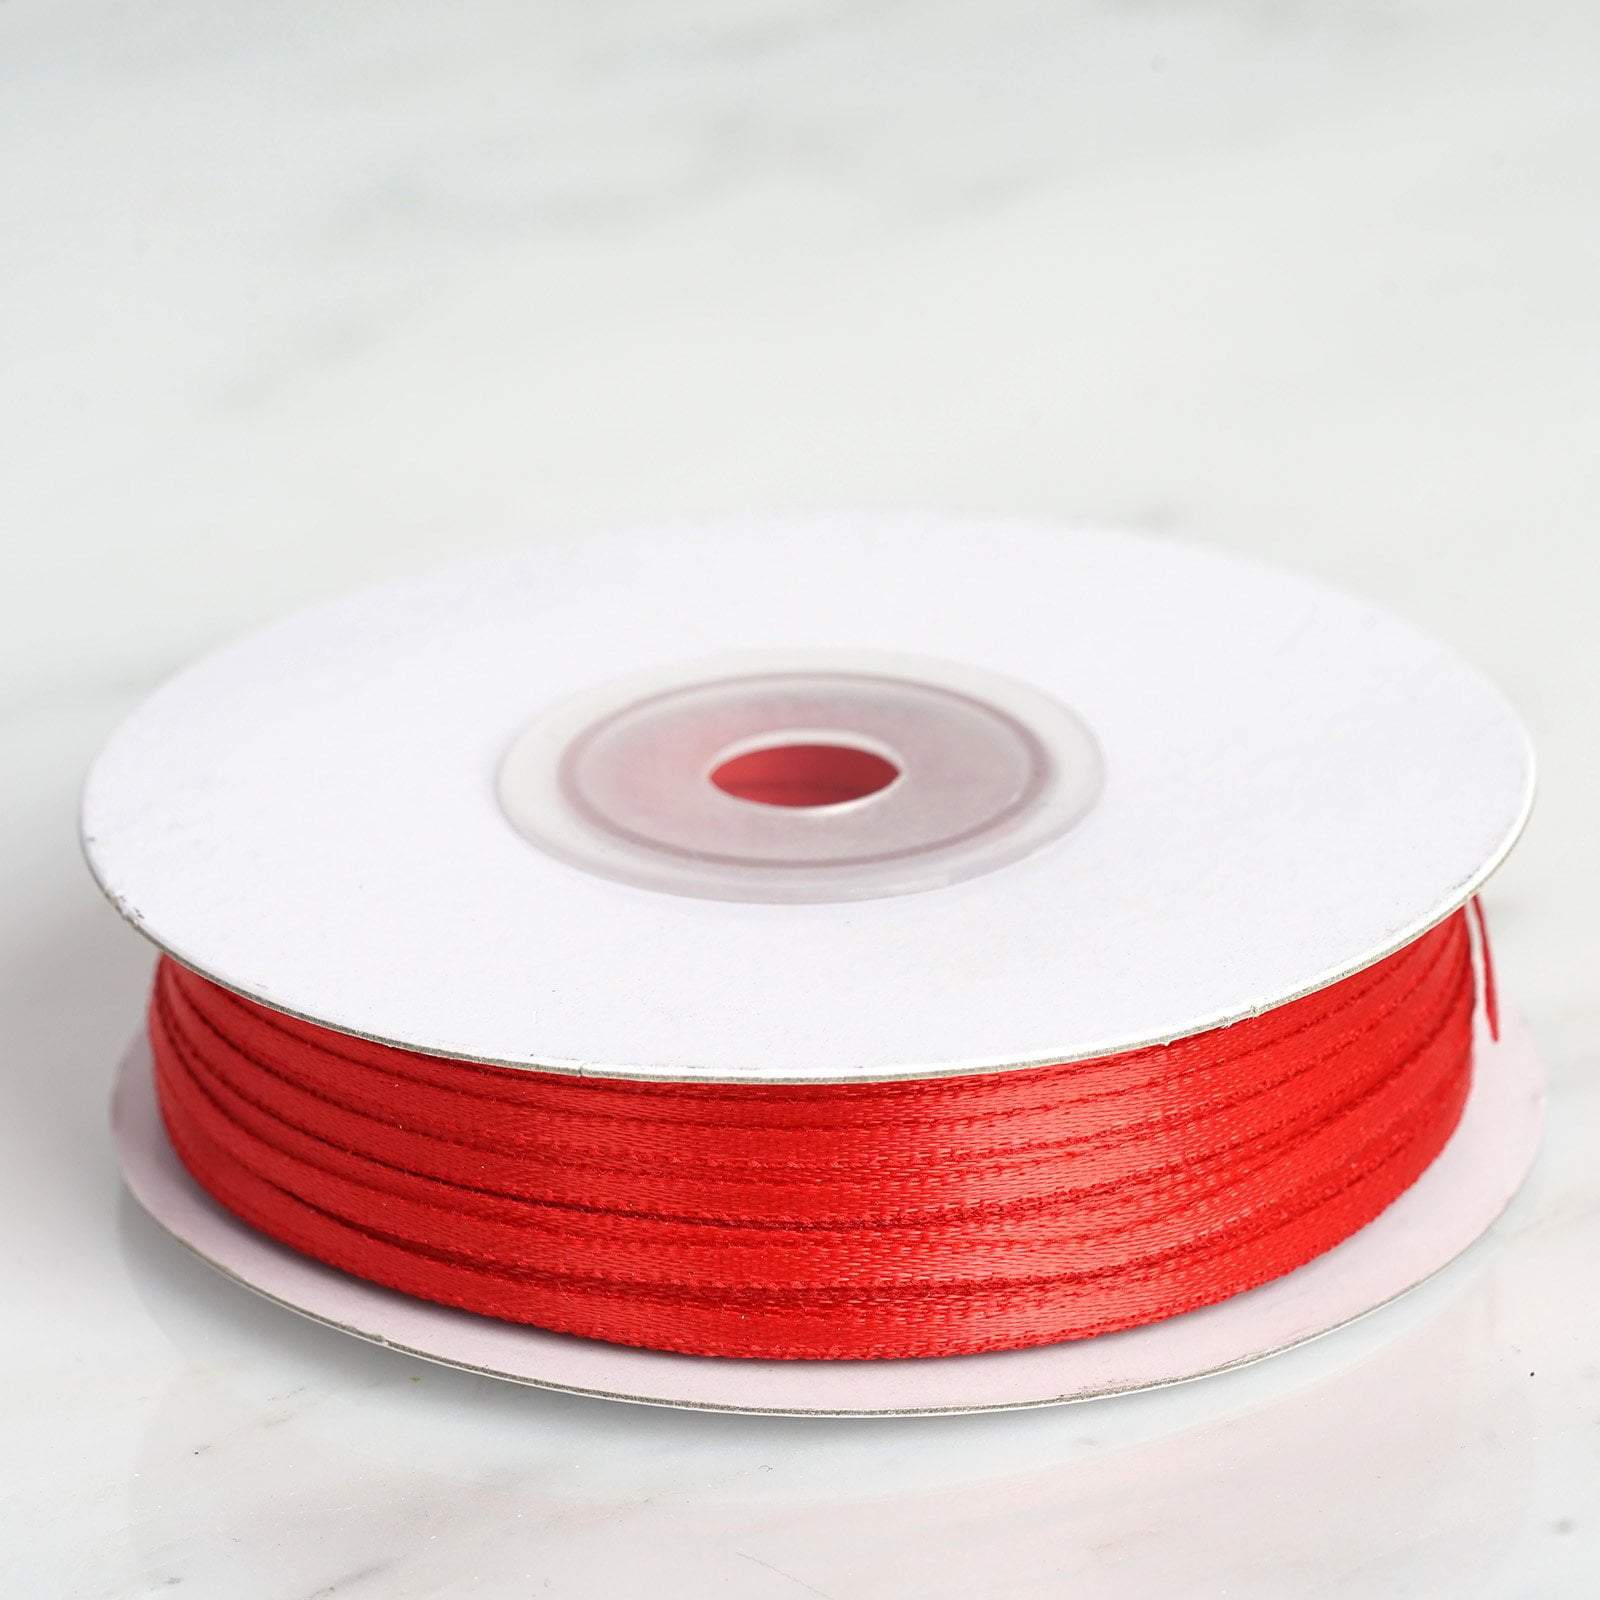 1/16 inch x 25 Yards Intricate Single Face Red Satin Ribbon